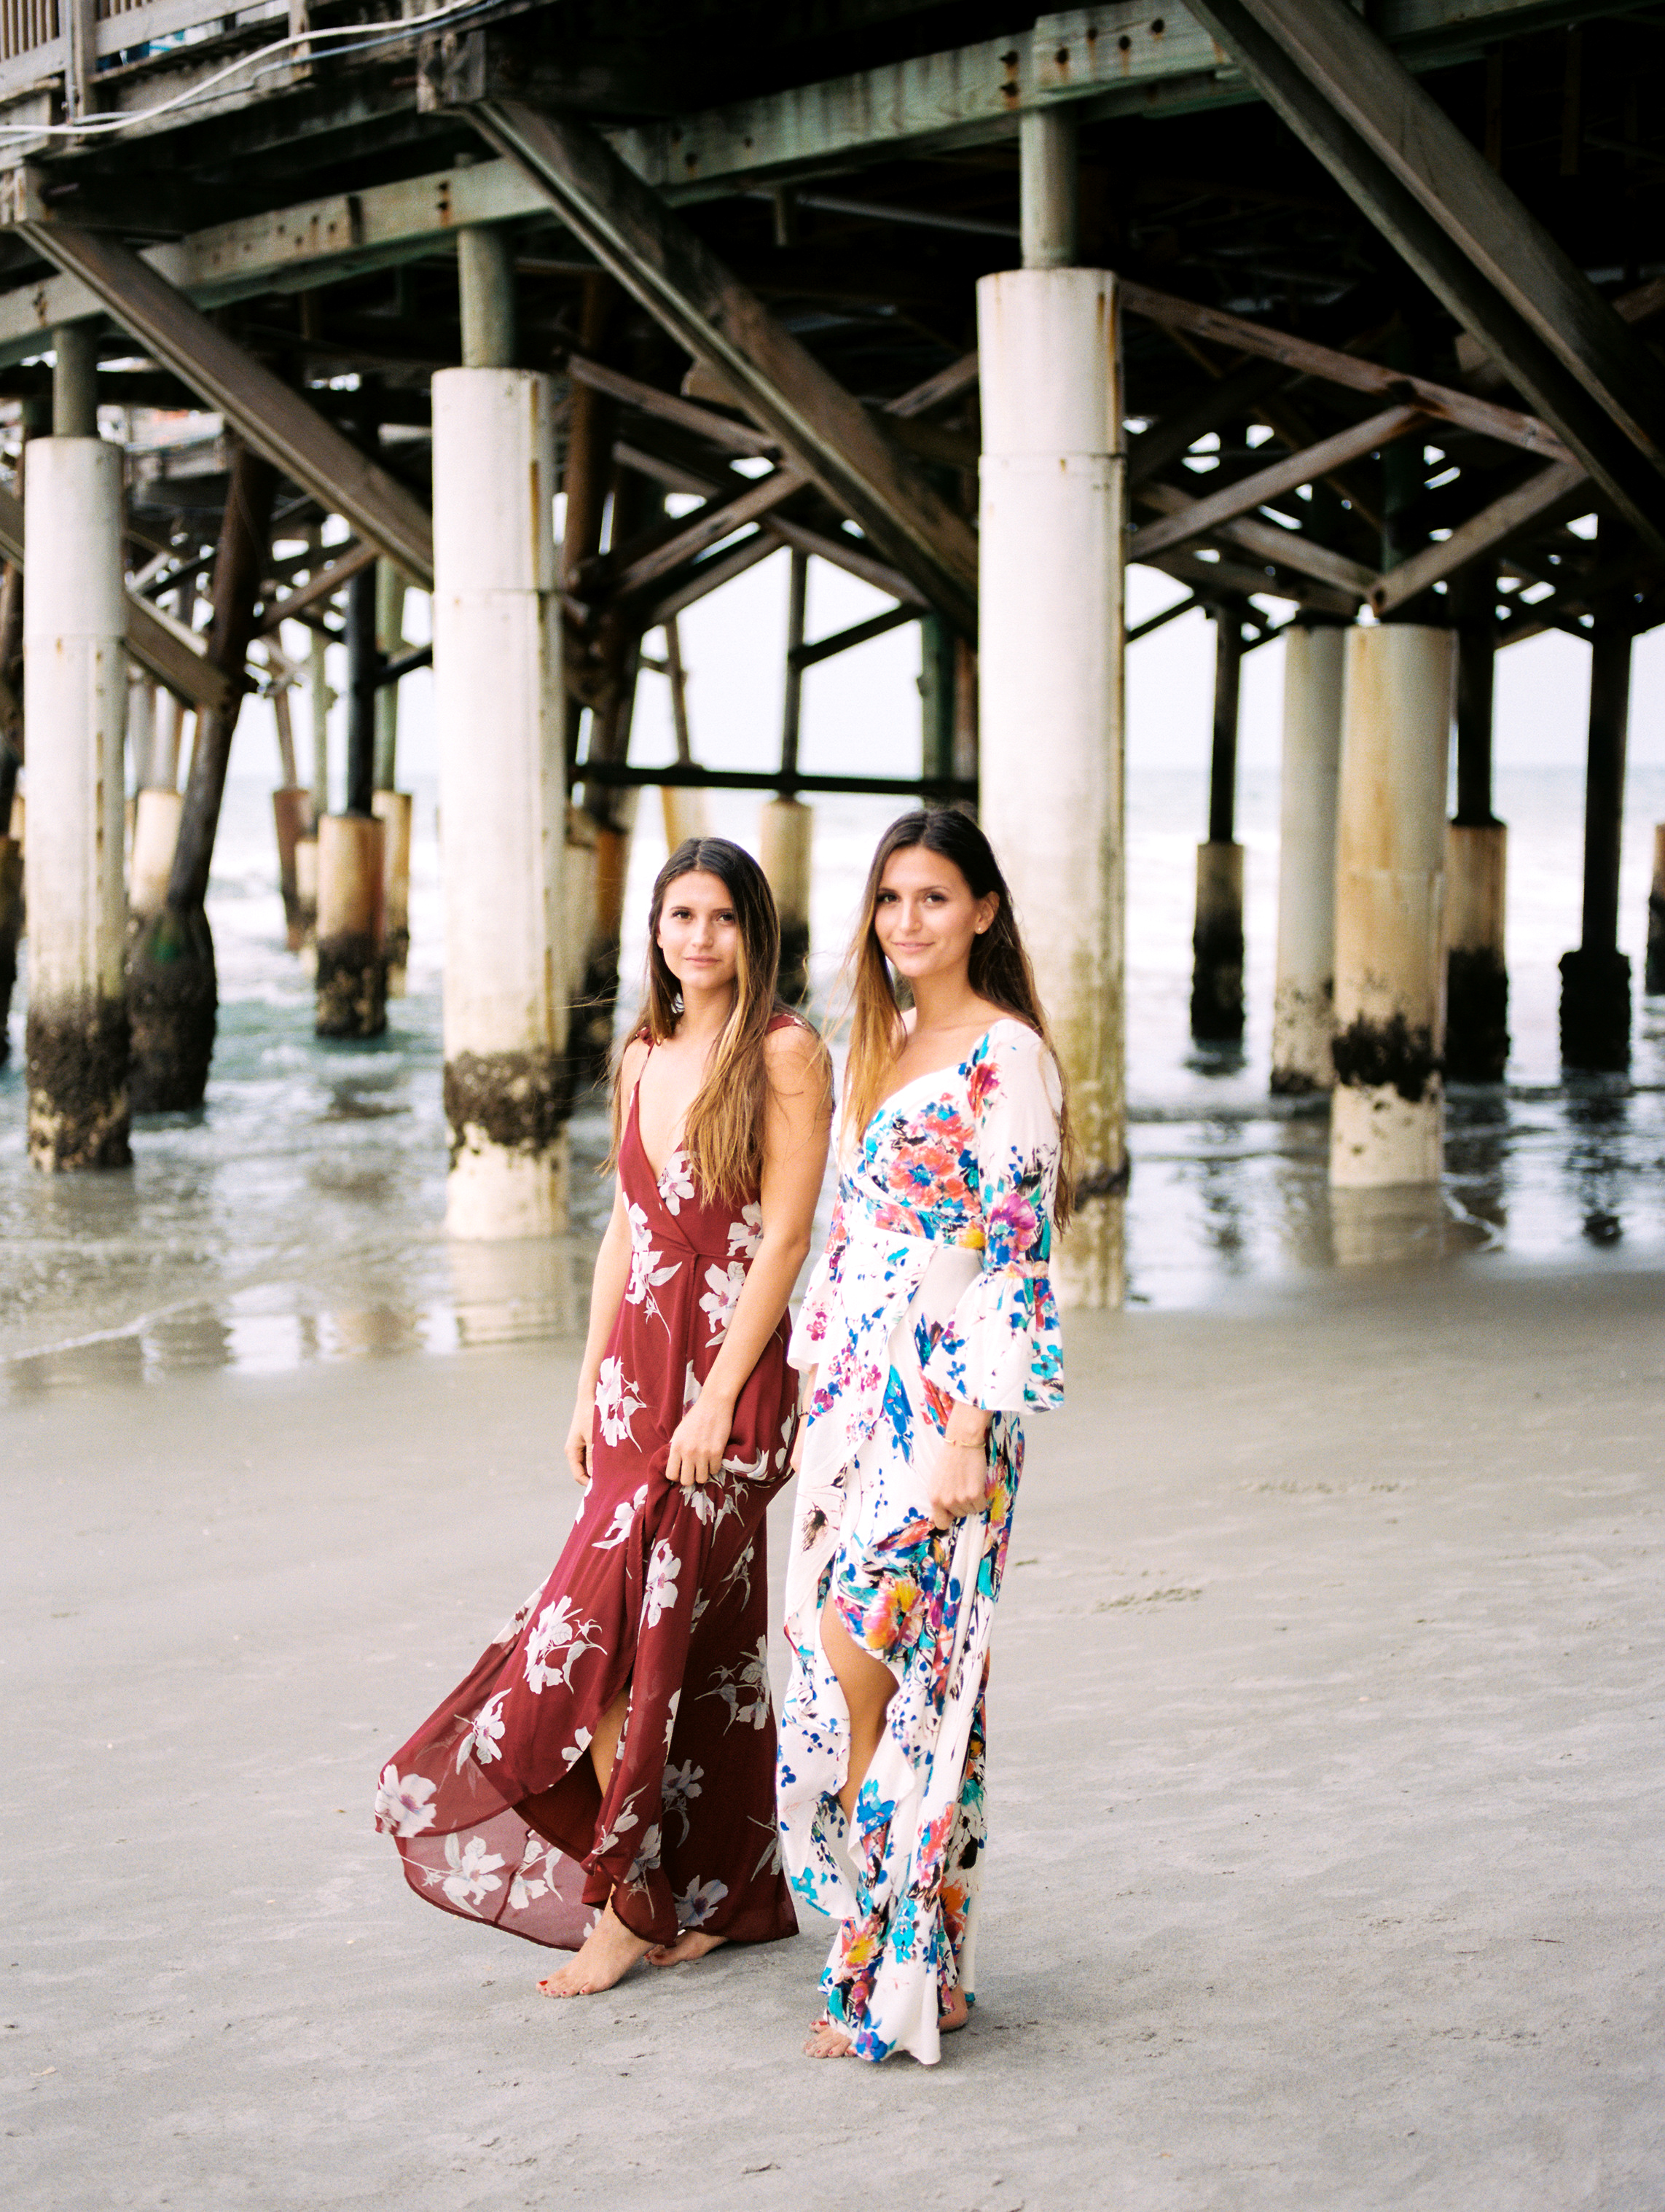 orlando cocoa beach pier and models in dress photography by jessica bellinger